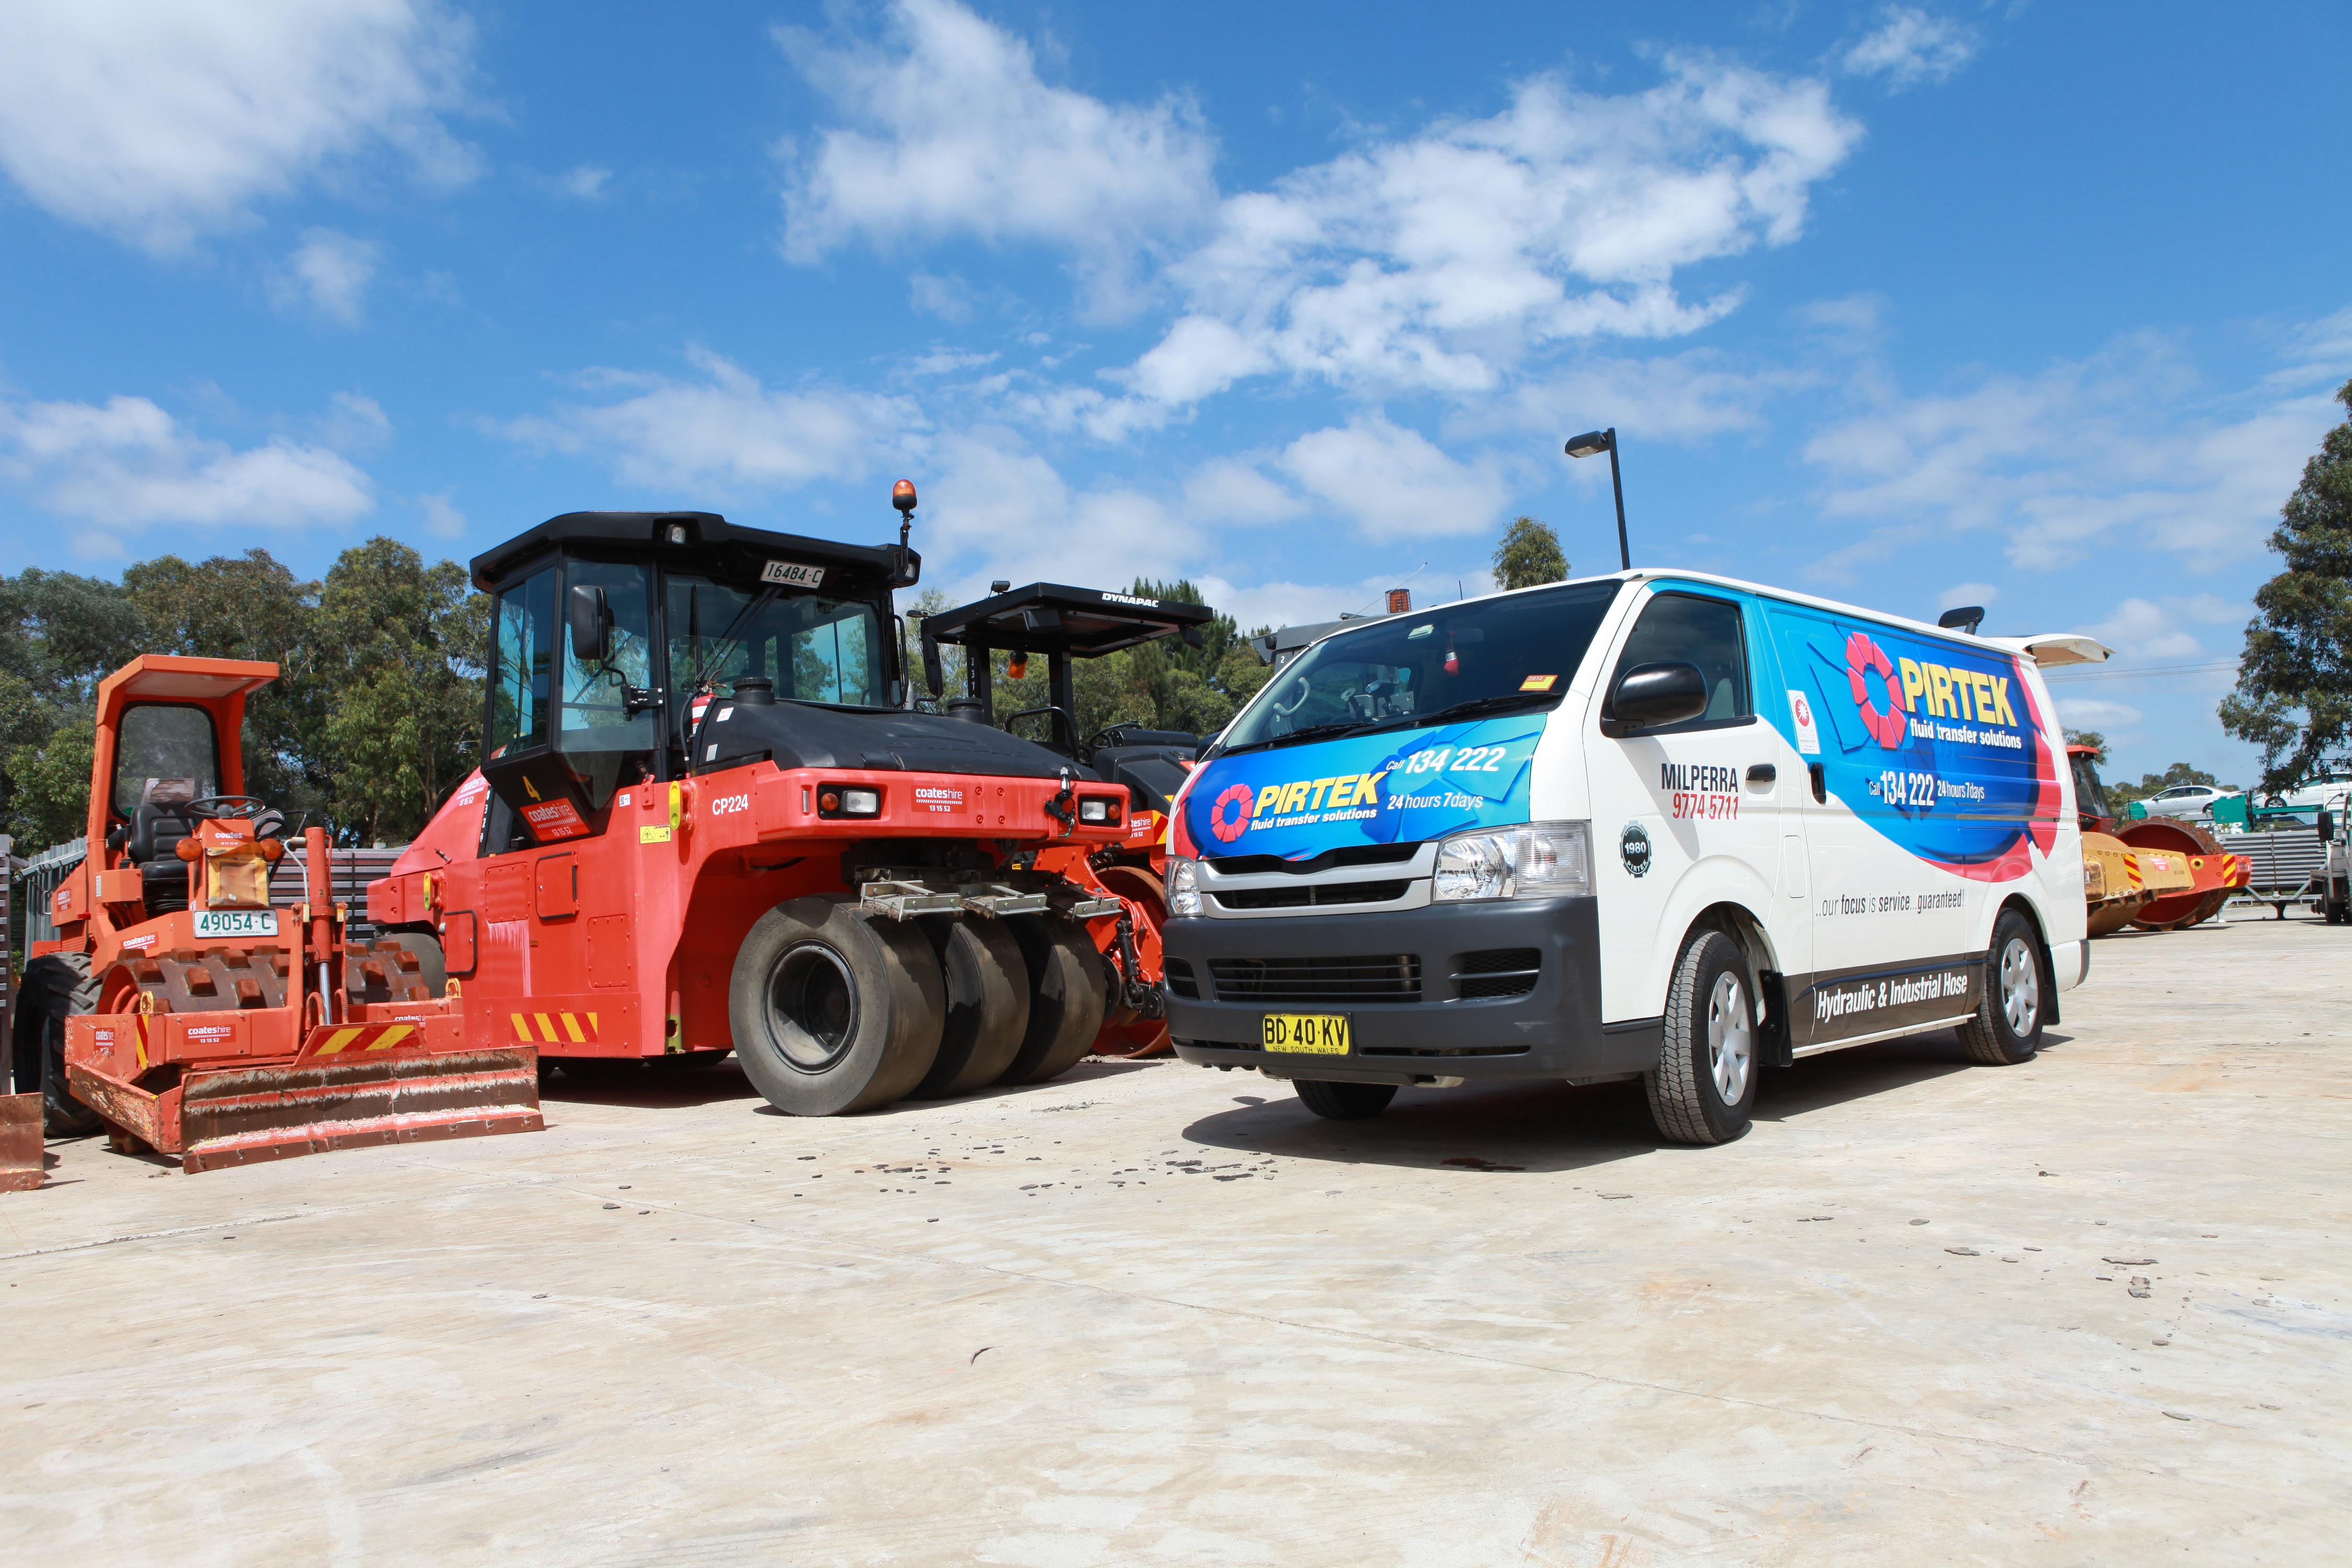 pirtek-franchise-available-work-for-yourself-not-by-yourself-4